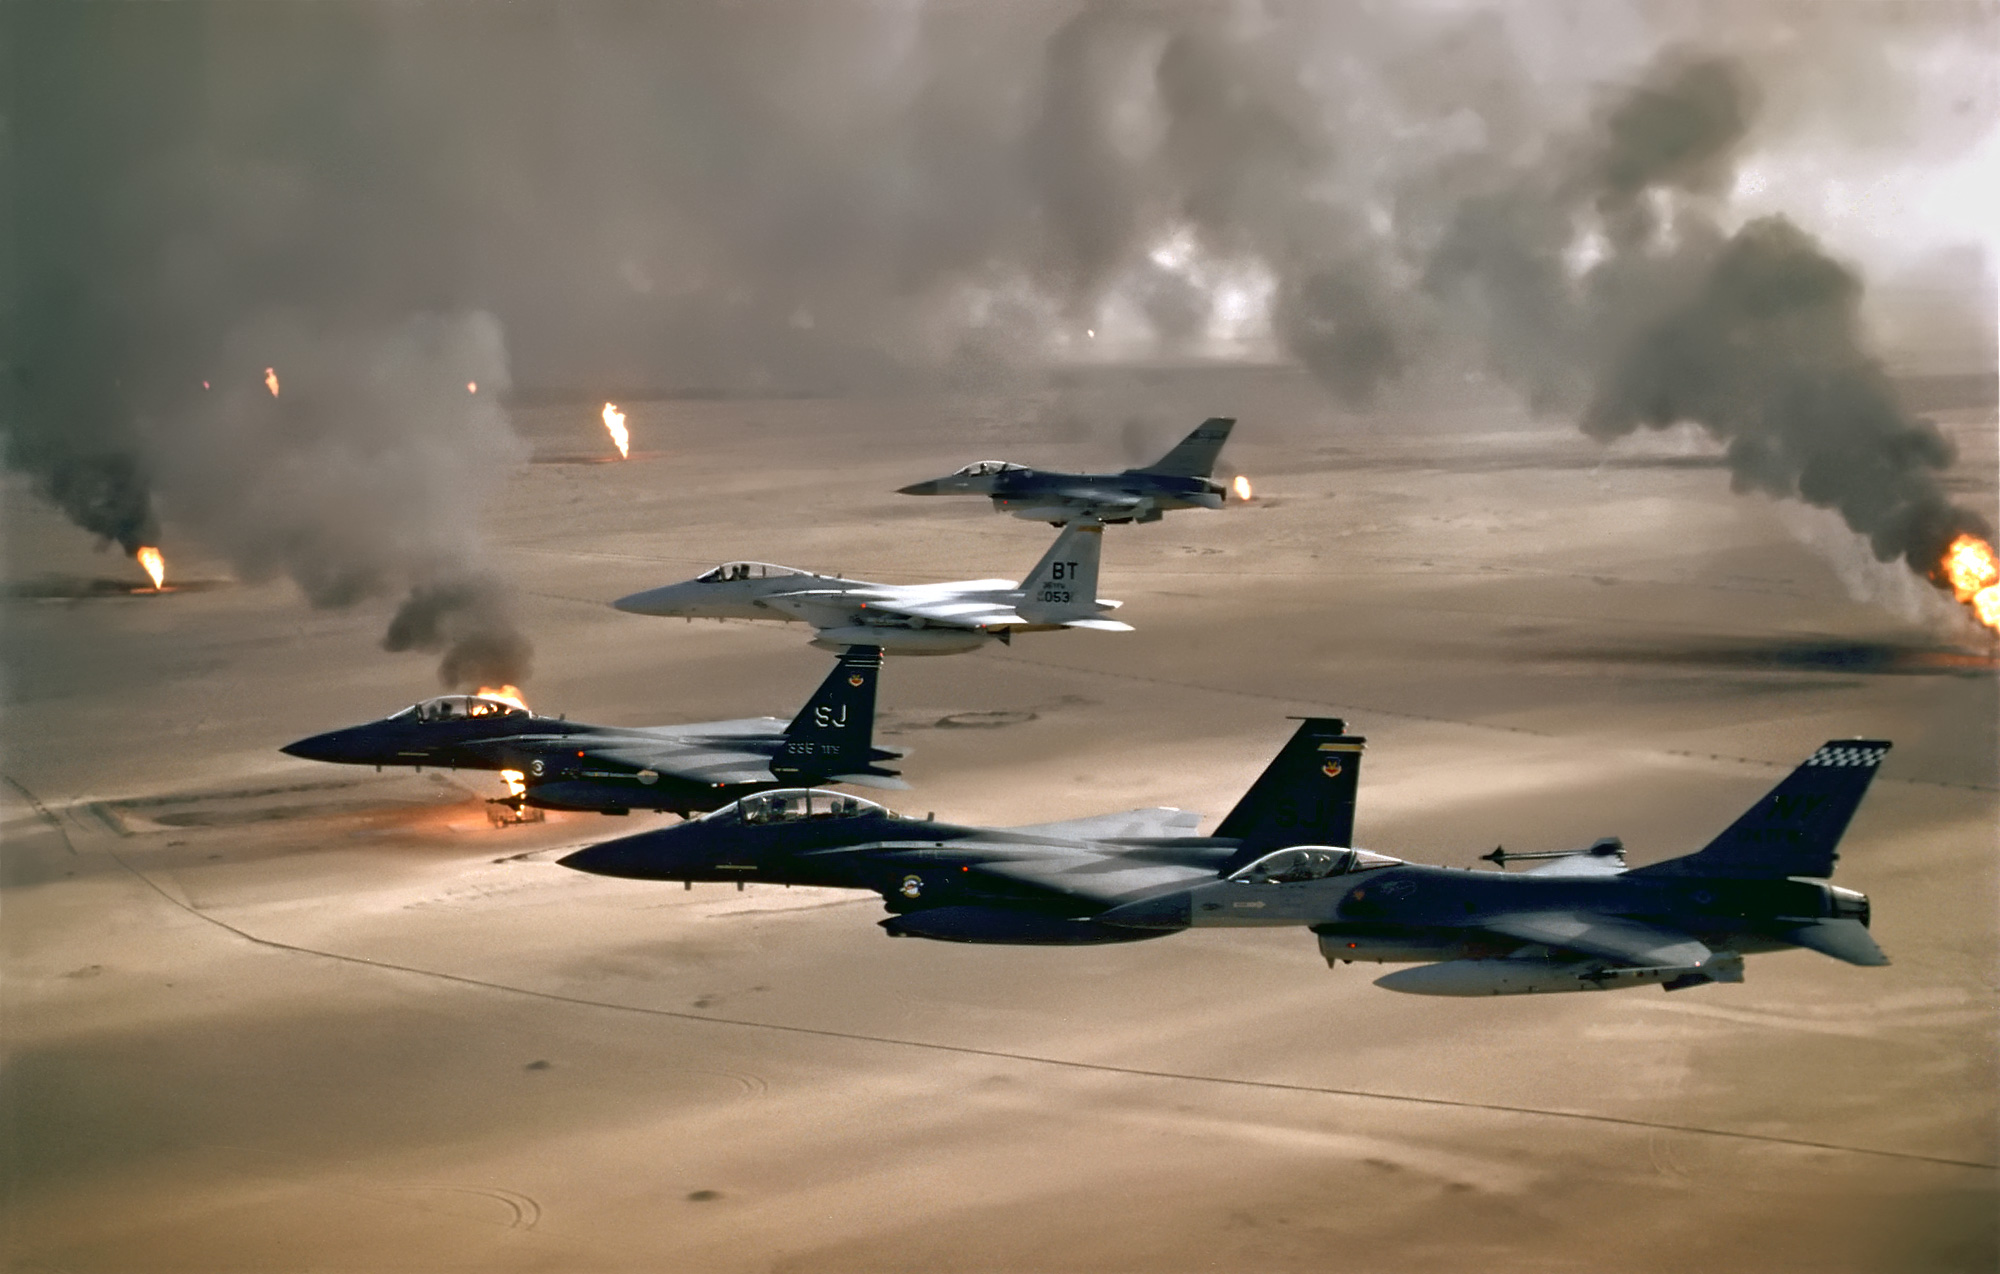 USAF aircraft of the 4th Fighter Wing fly over Kuwaiti oil fires